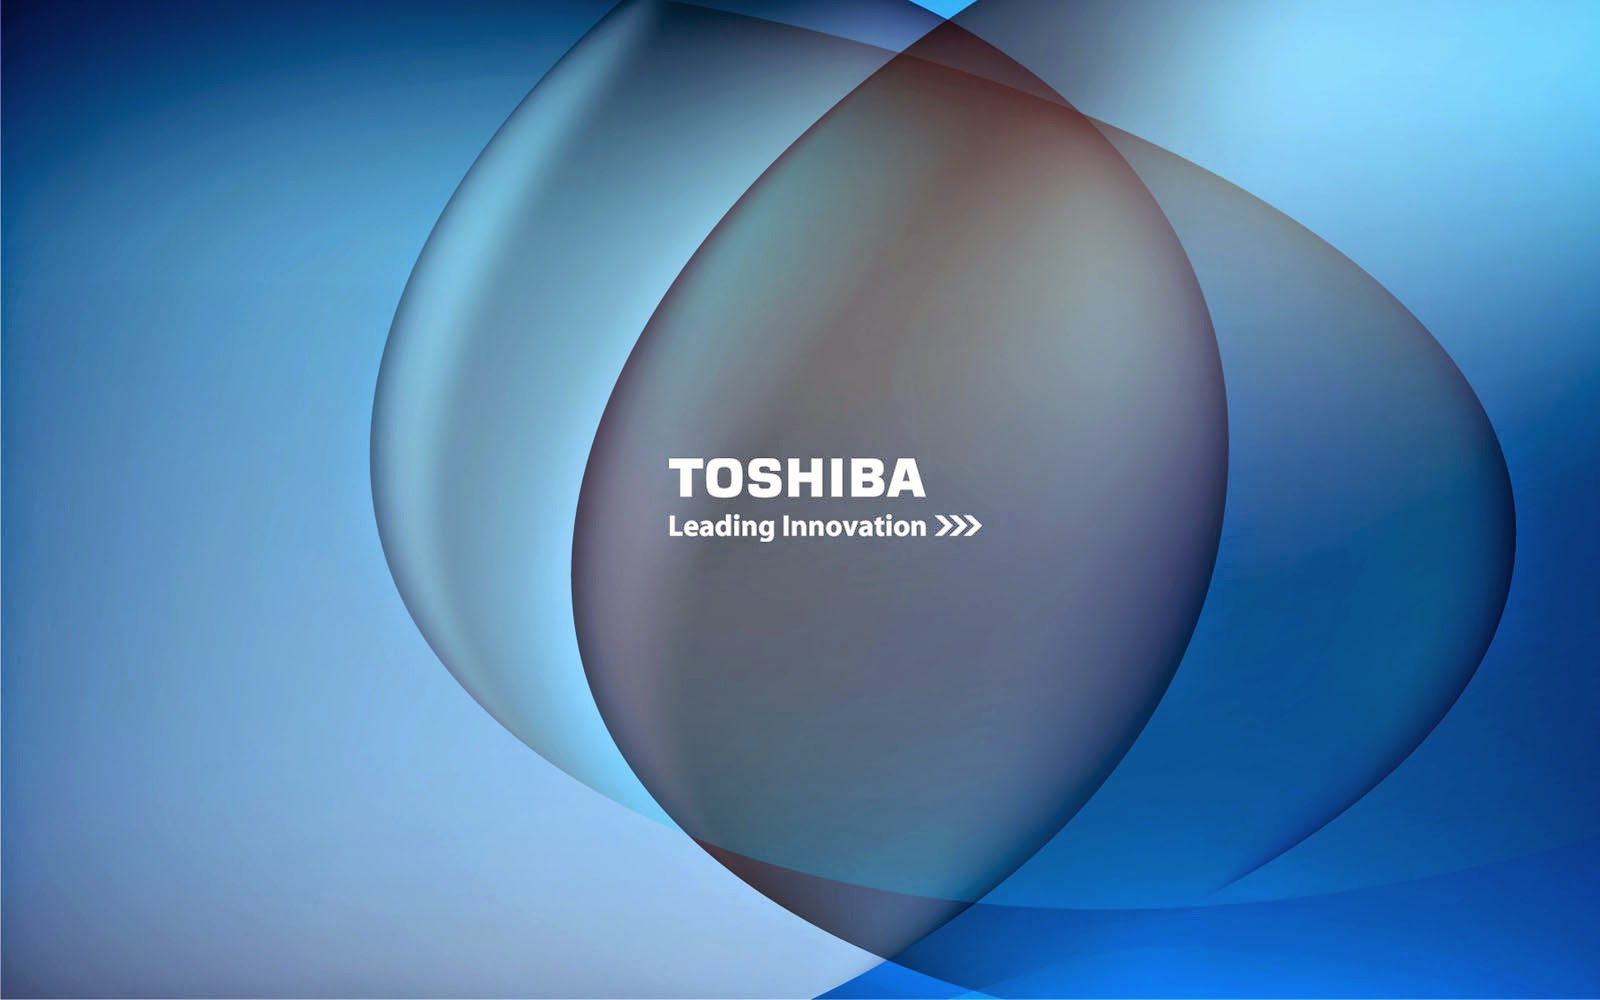 Wallpapers Toshiba Wallpapers